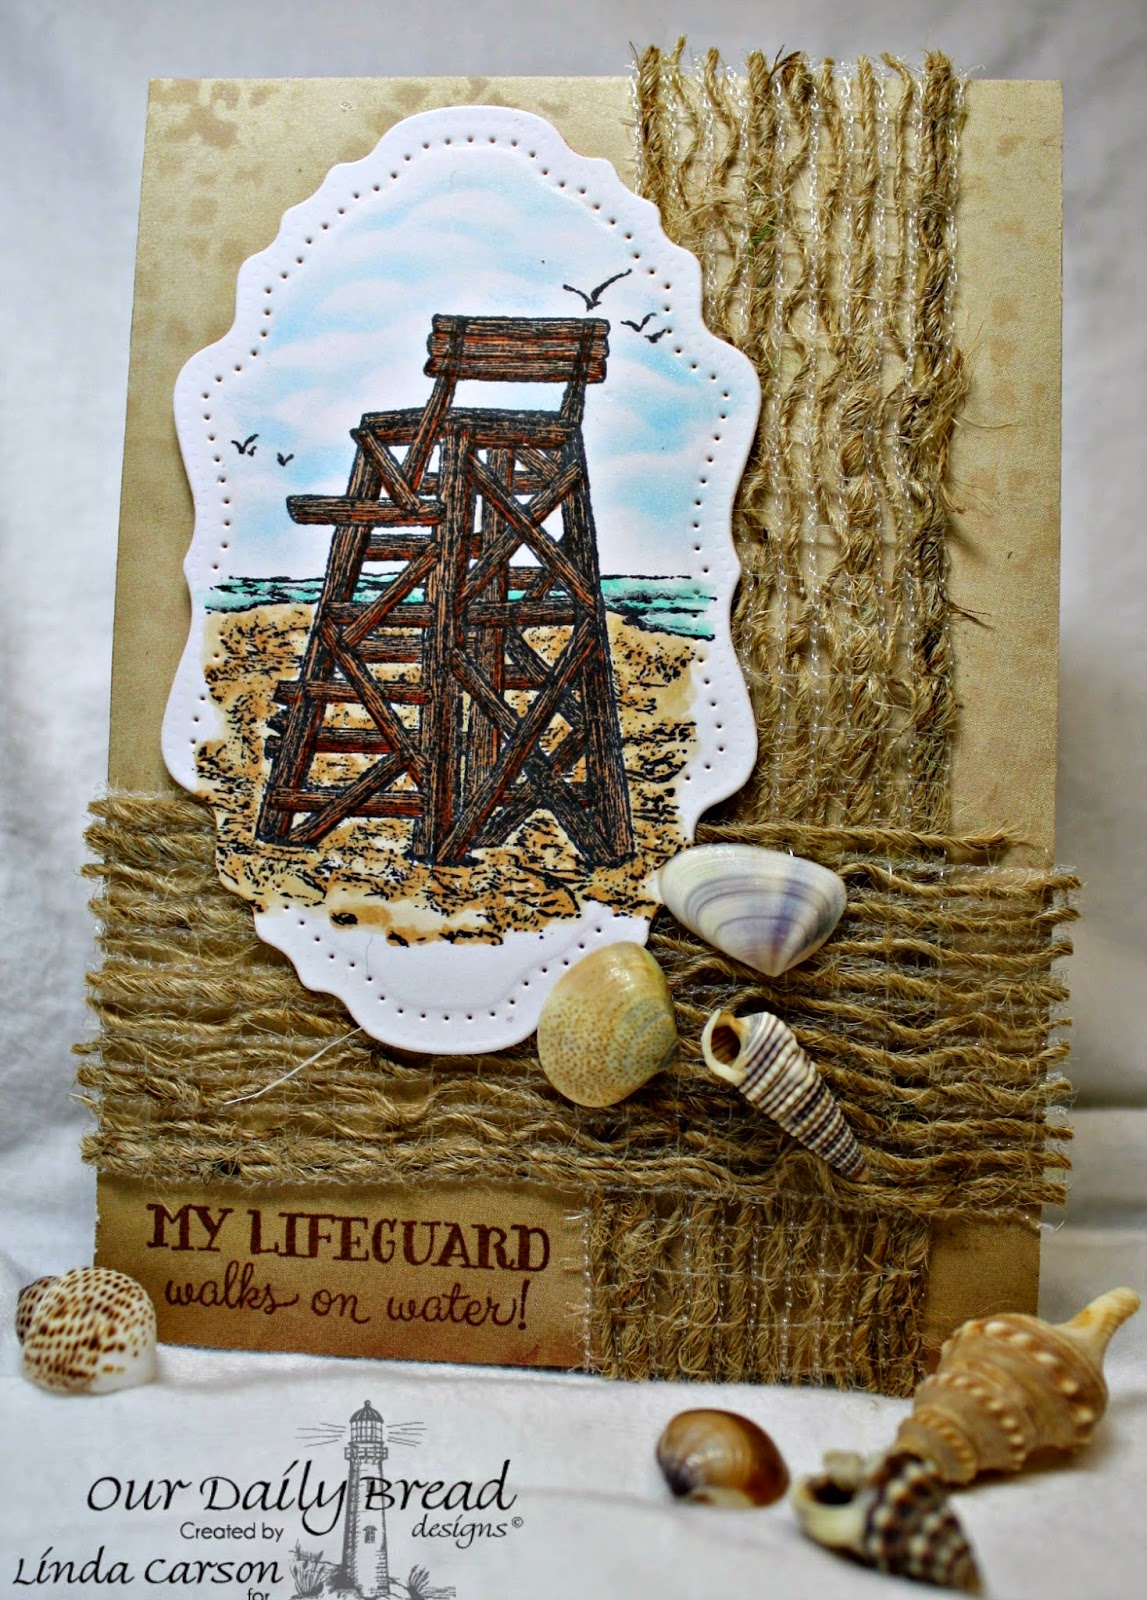 Our Daily Bread Designs, My Lifeguard, Vintage Flourish Pattern die, designer Linda Carson